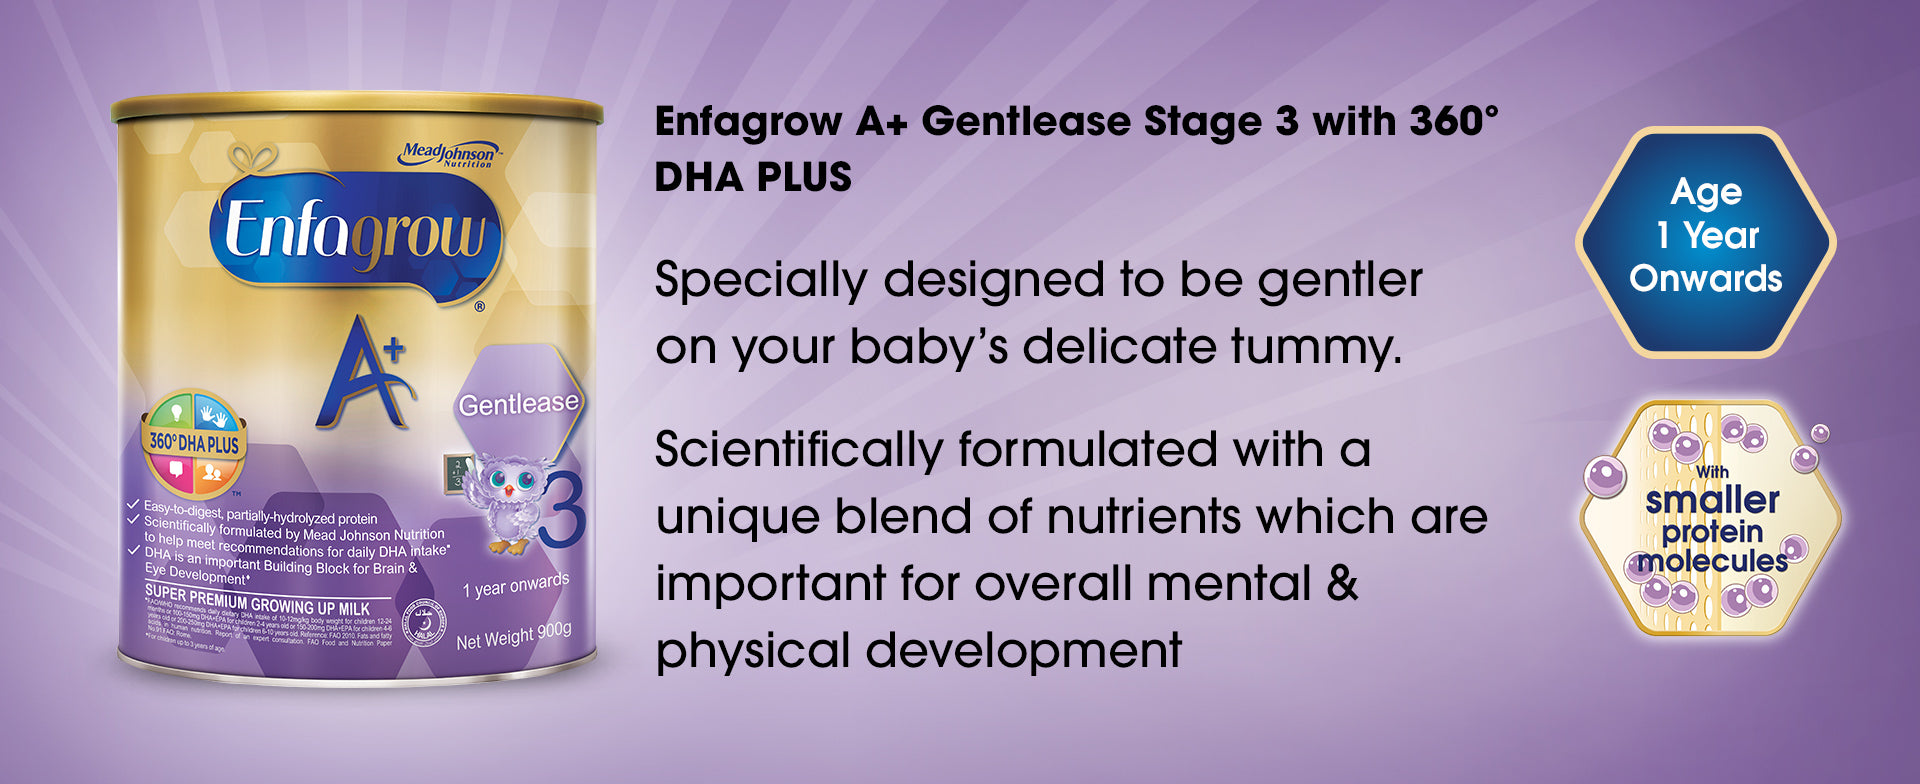 Enfagrow A+ Gentlease Stage 3 with 360 degrees DHA PLUS - a product banner image with basic information